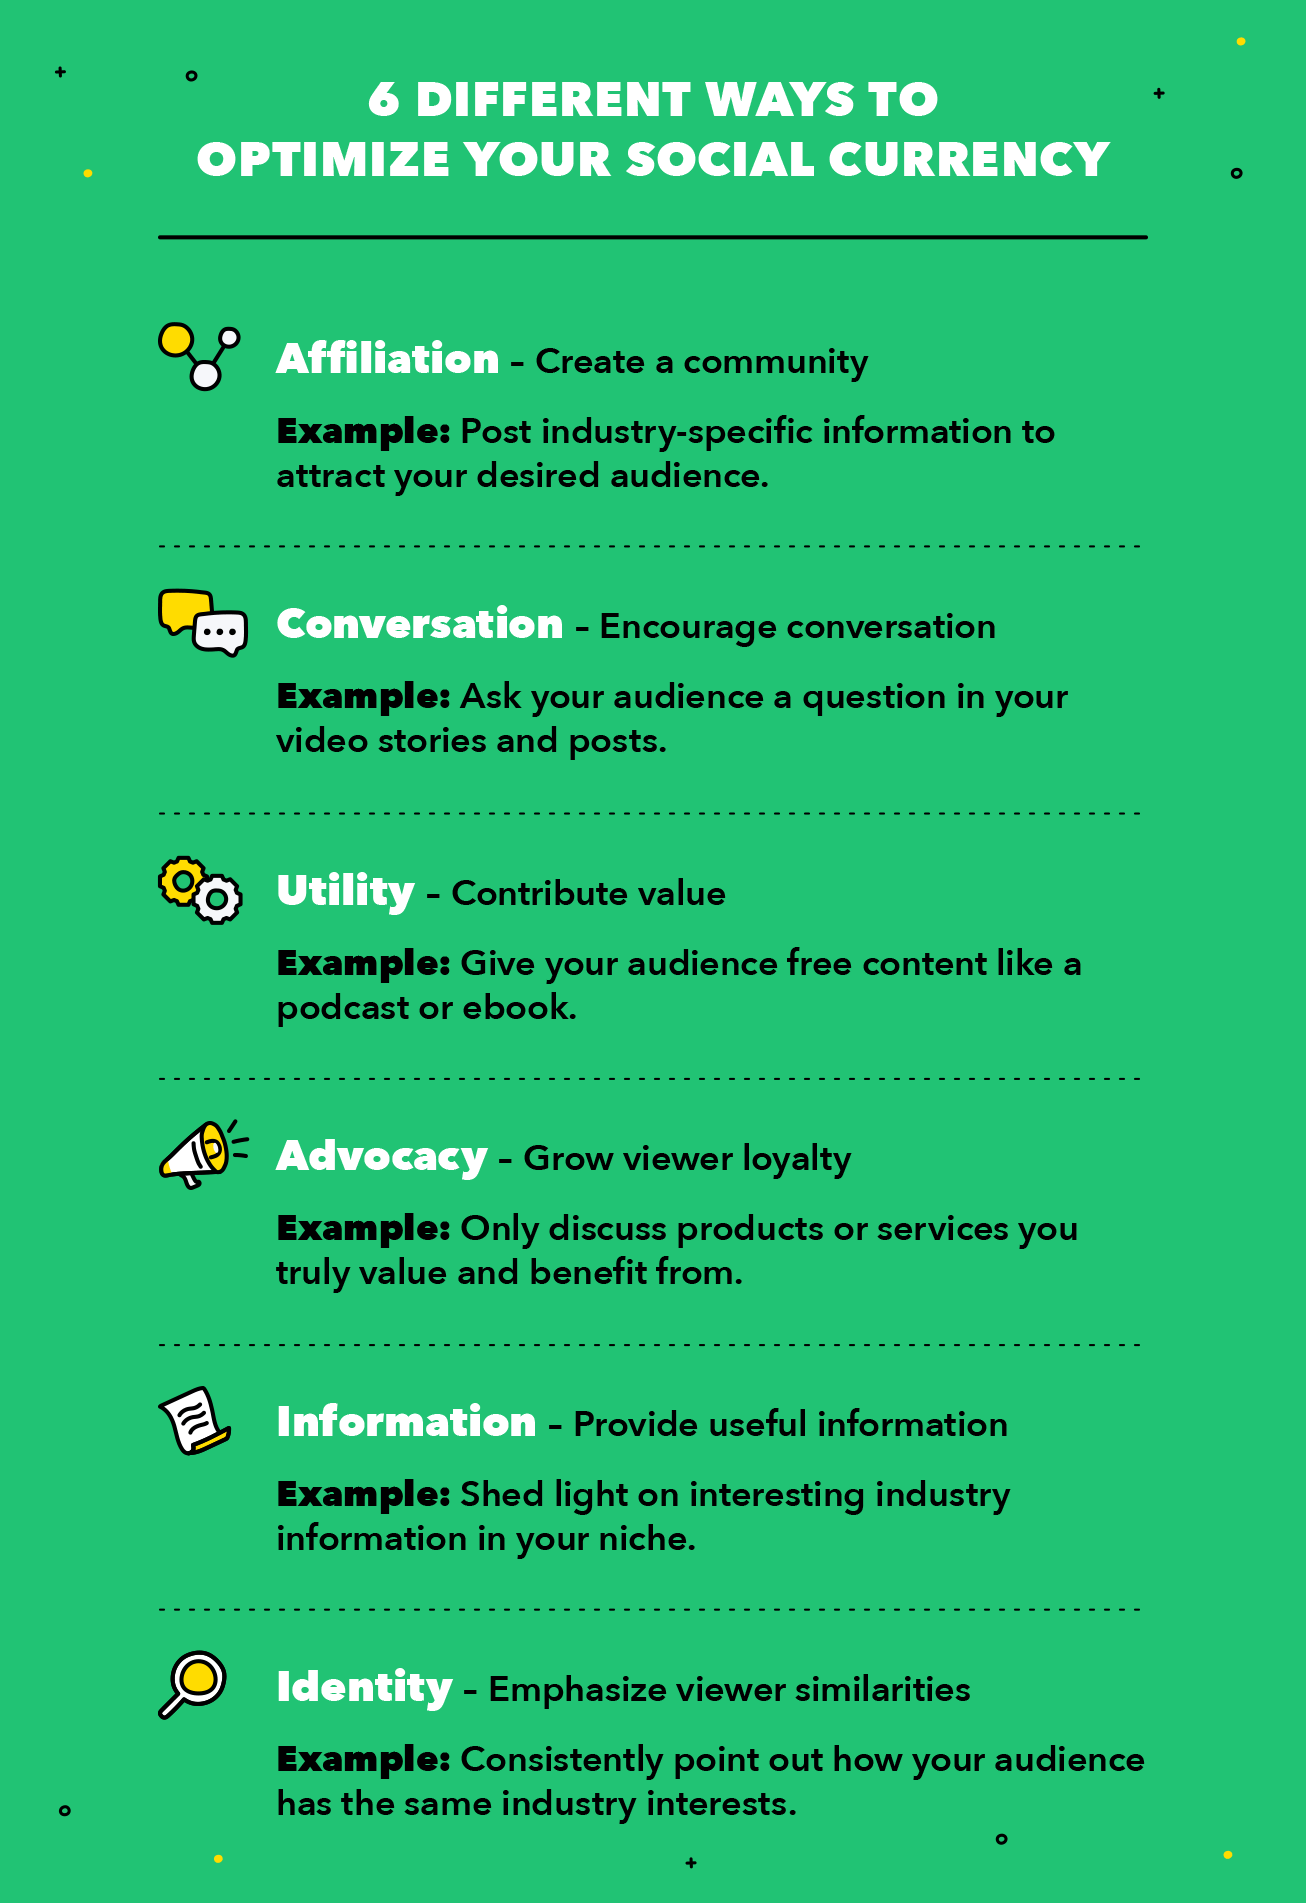 6 Different Ways to Optimize your Social Currency